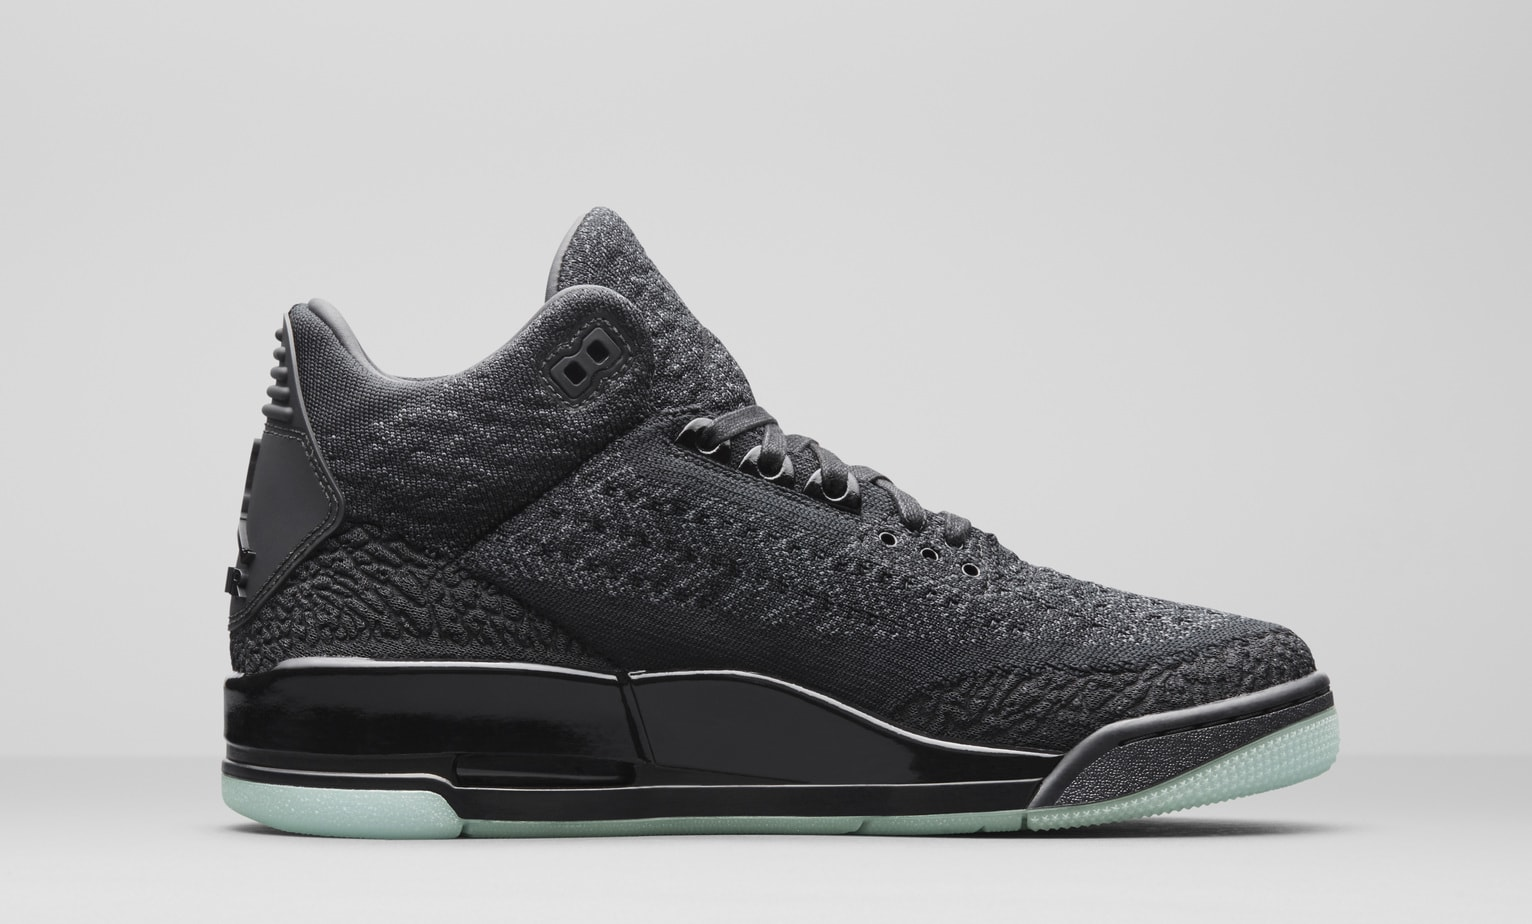 5a9bc0a9c12d38 ... australia air jordan 3 flyknit anthracite release date august 18th  2018. price 220. color